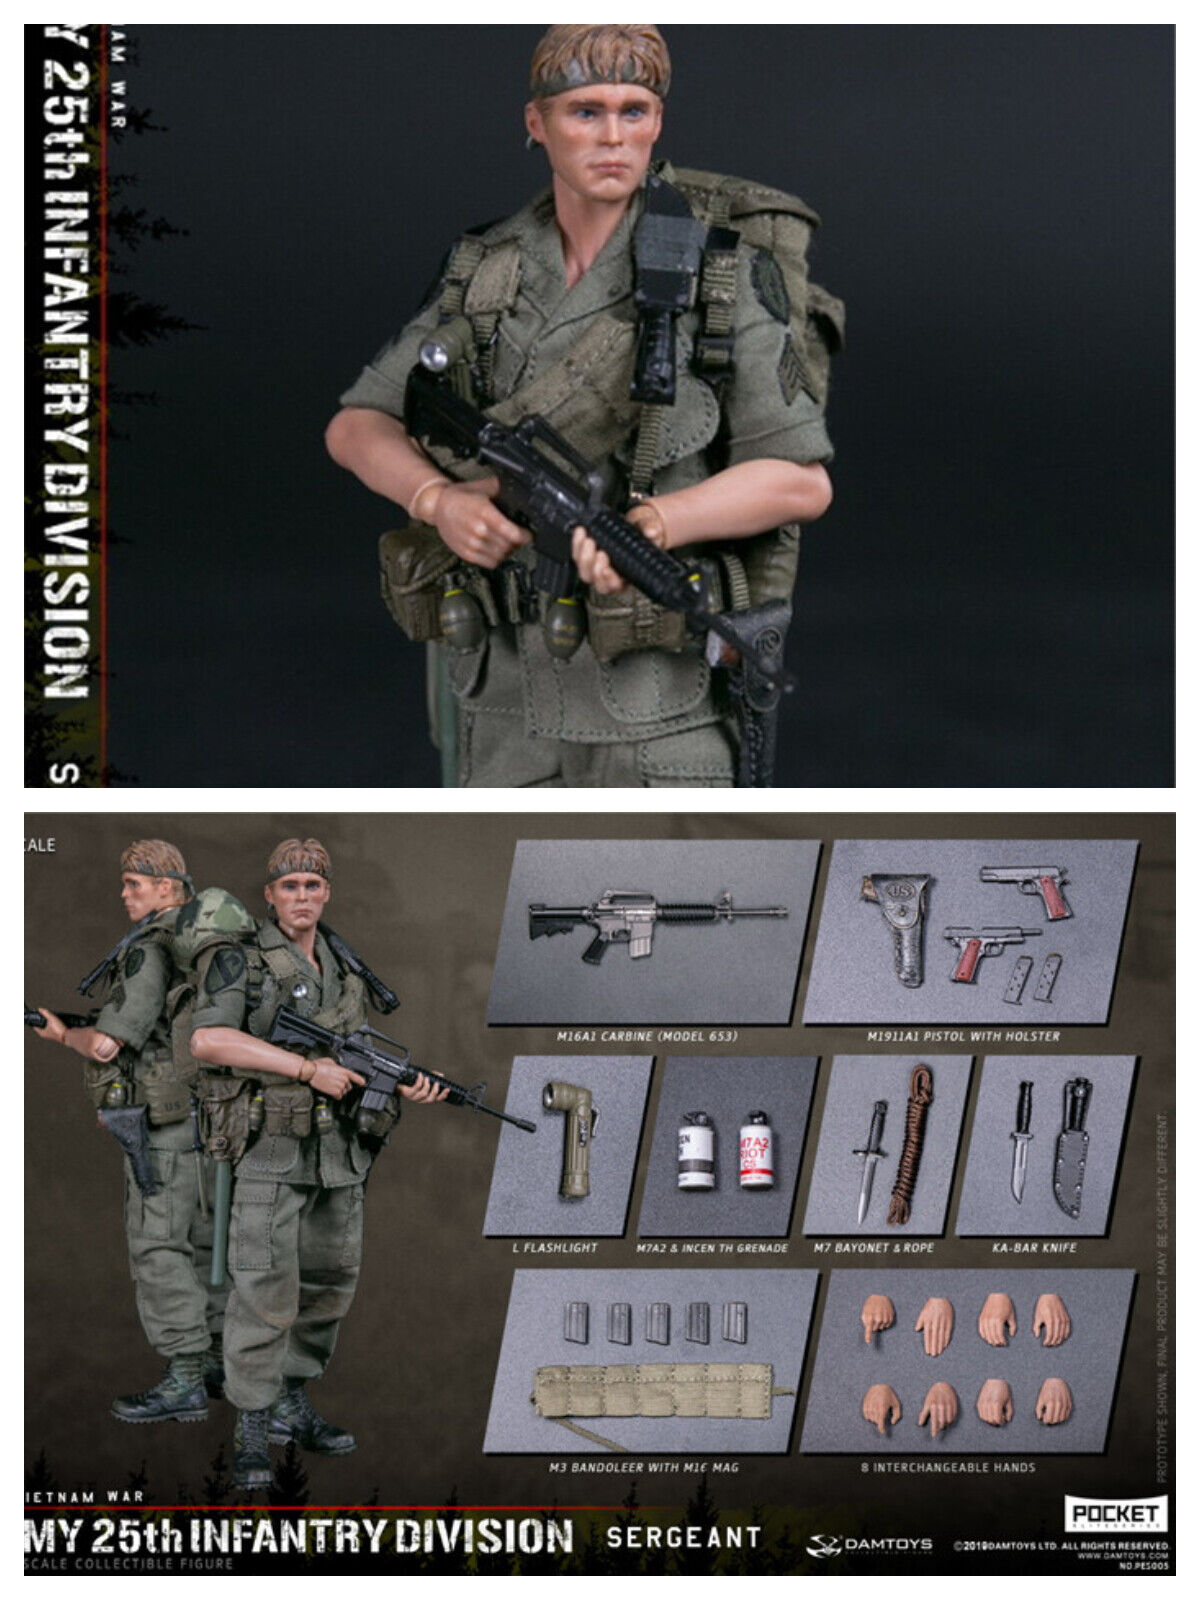 Instock 112 DAMgiocattoli Infantry Division Private SERGEANT PES005 azione cifra